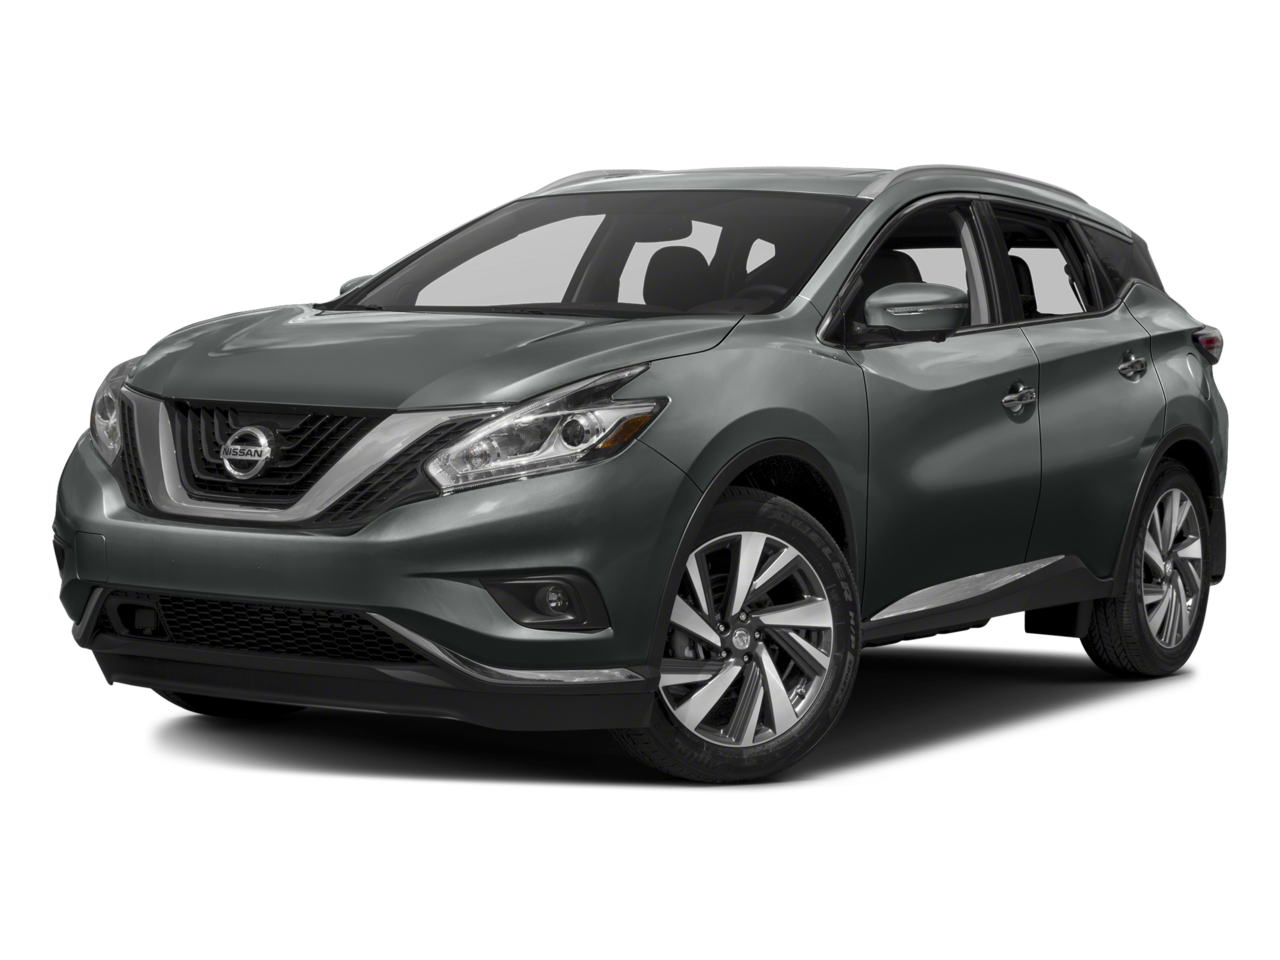 2017 nissan murano rothrock nissan allentown pa. Black Bedroom Furniture Sets. Home Design Ideas